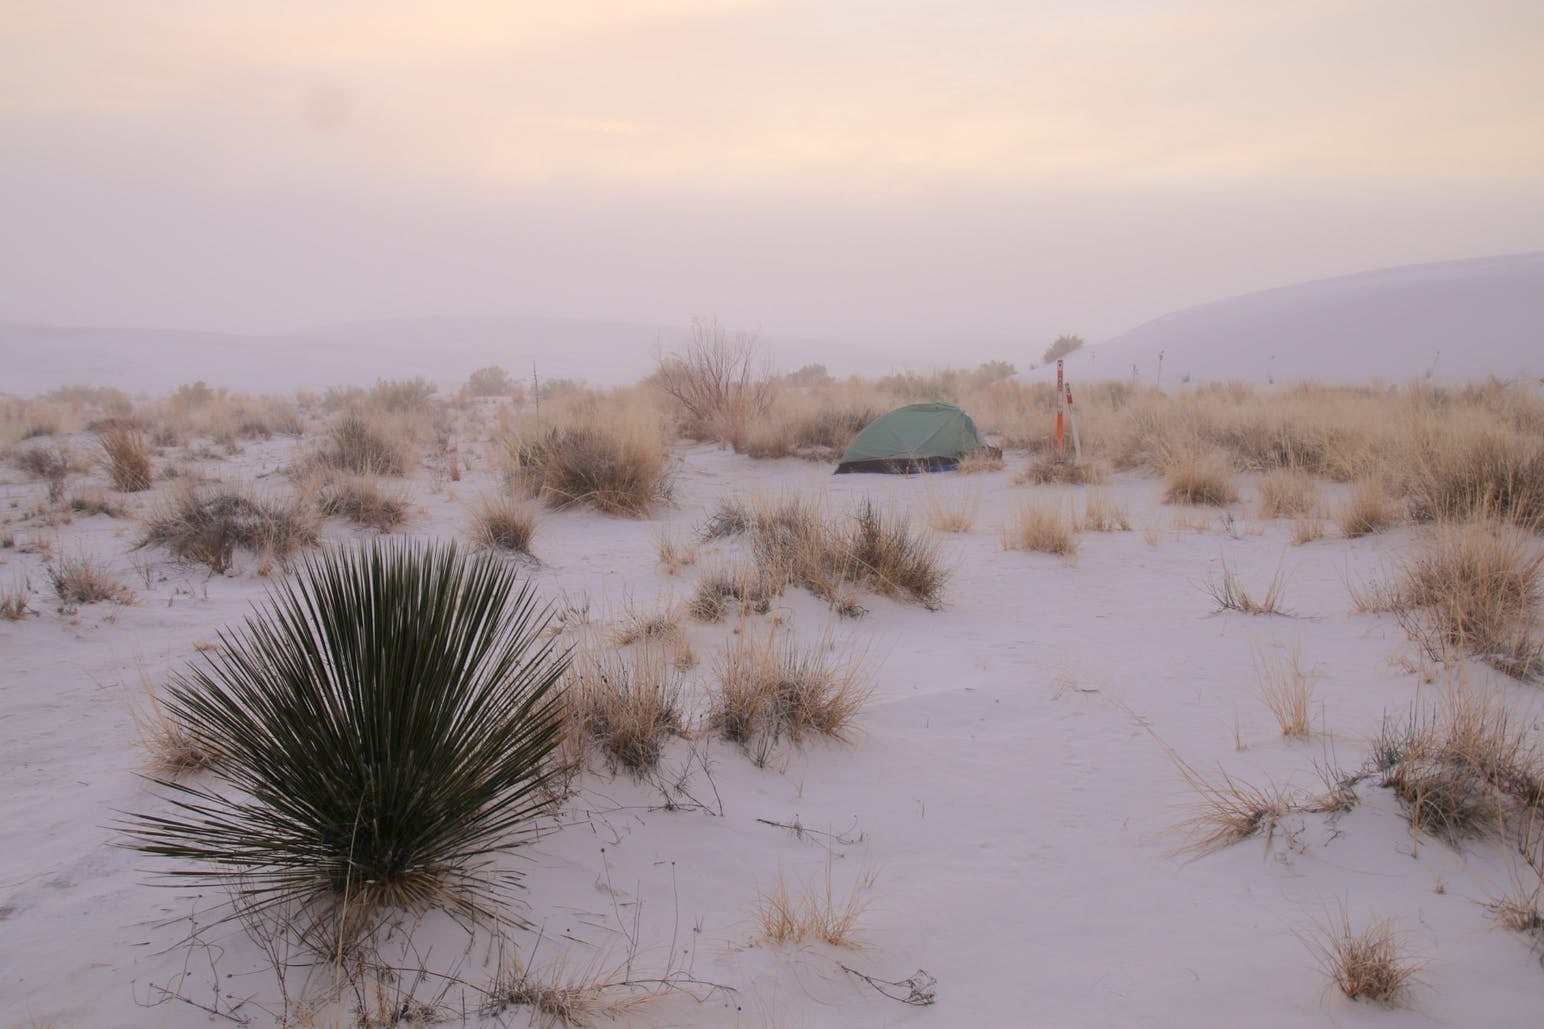 A small tent within the fog at a campsite in The Sands National Park.